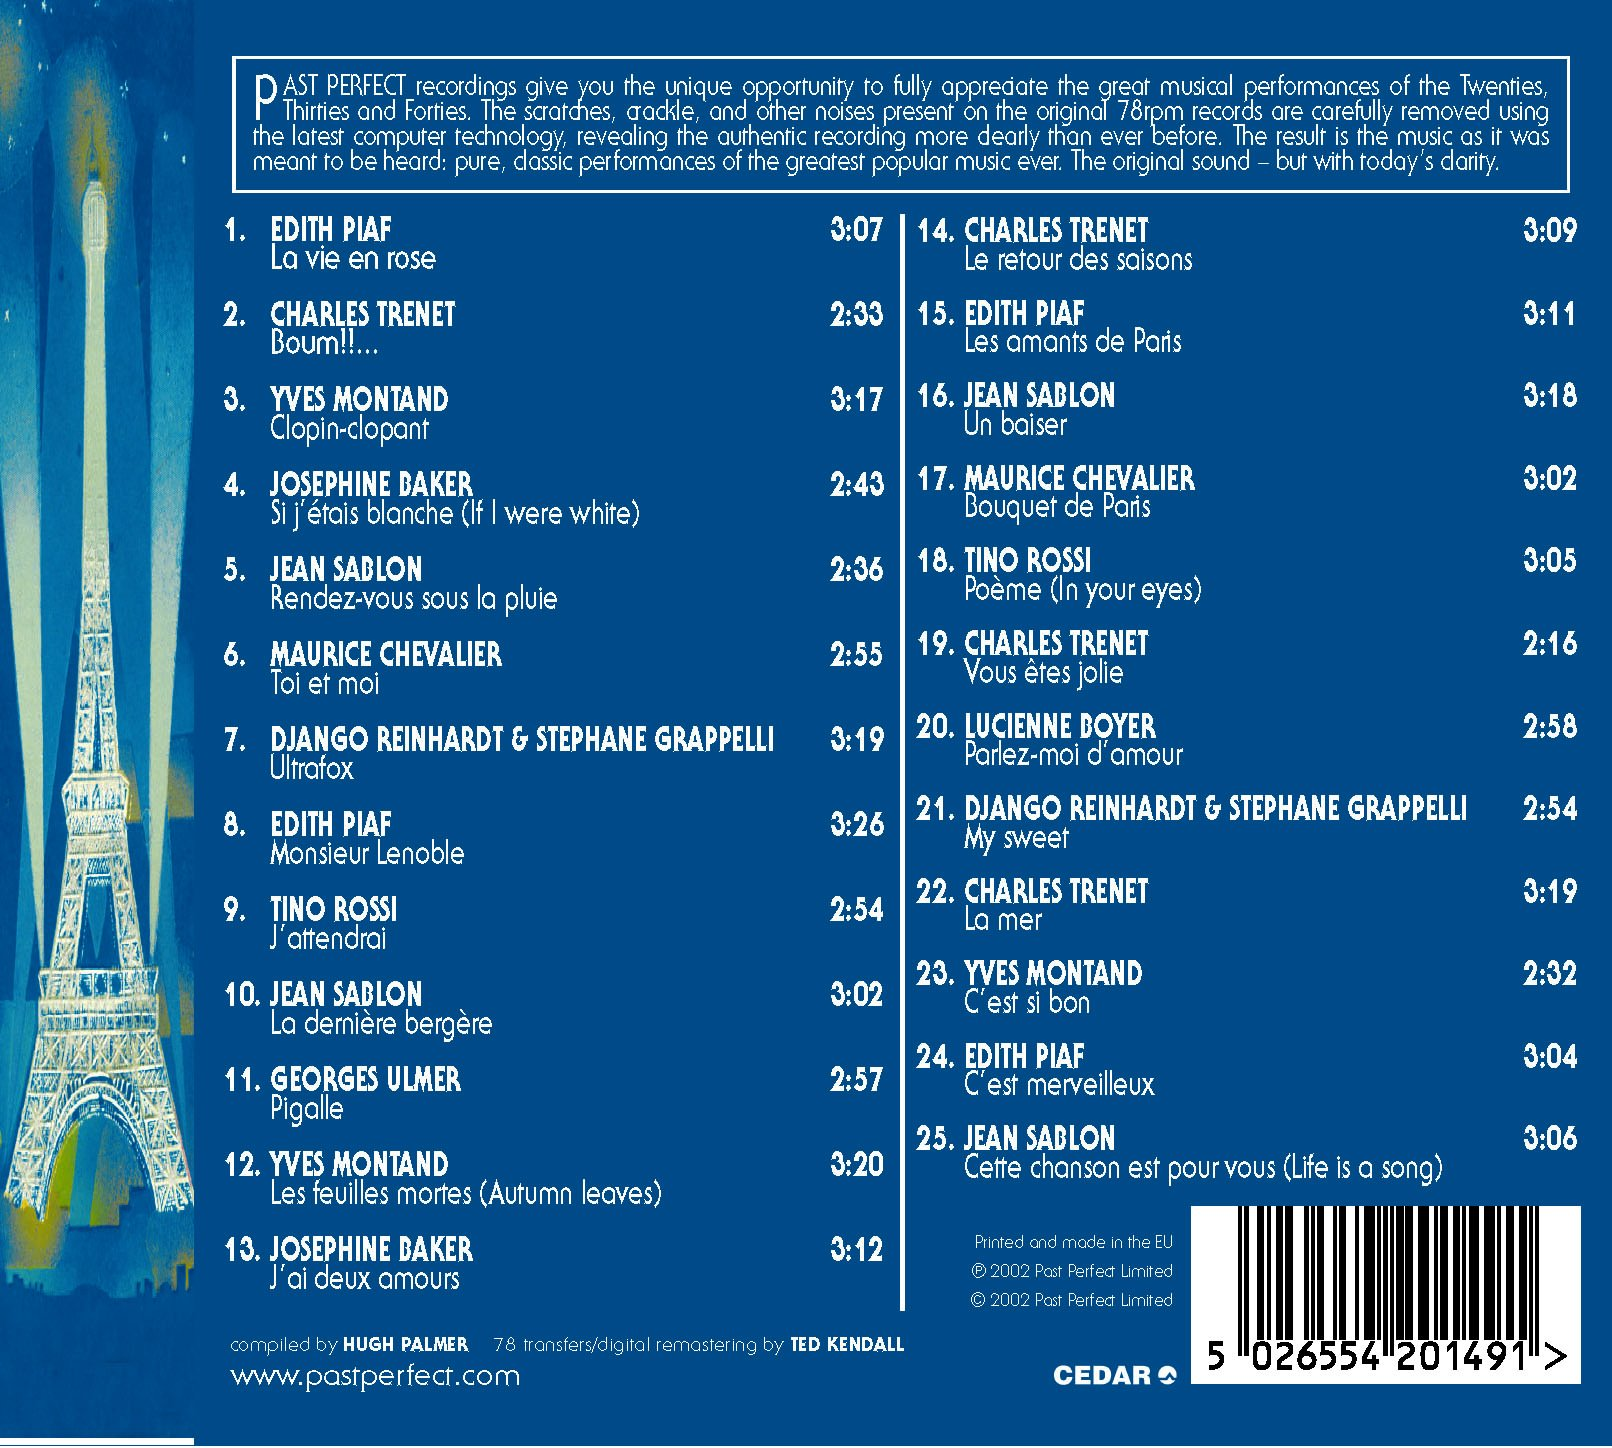 La Vie Parisienne - French Chansons From the 1930s & 40s by Past Perfect